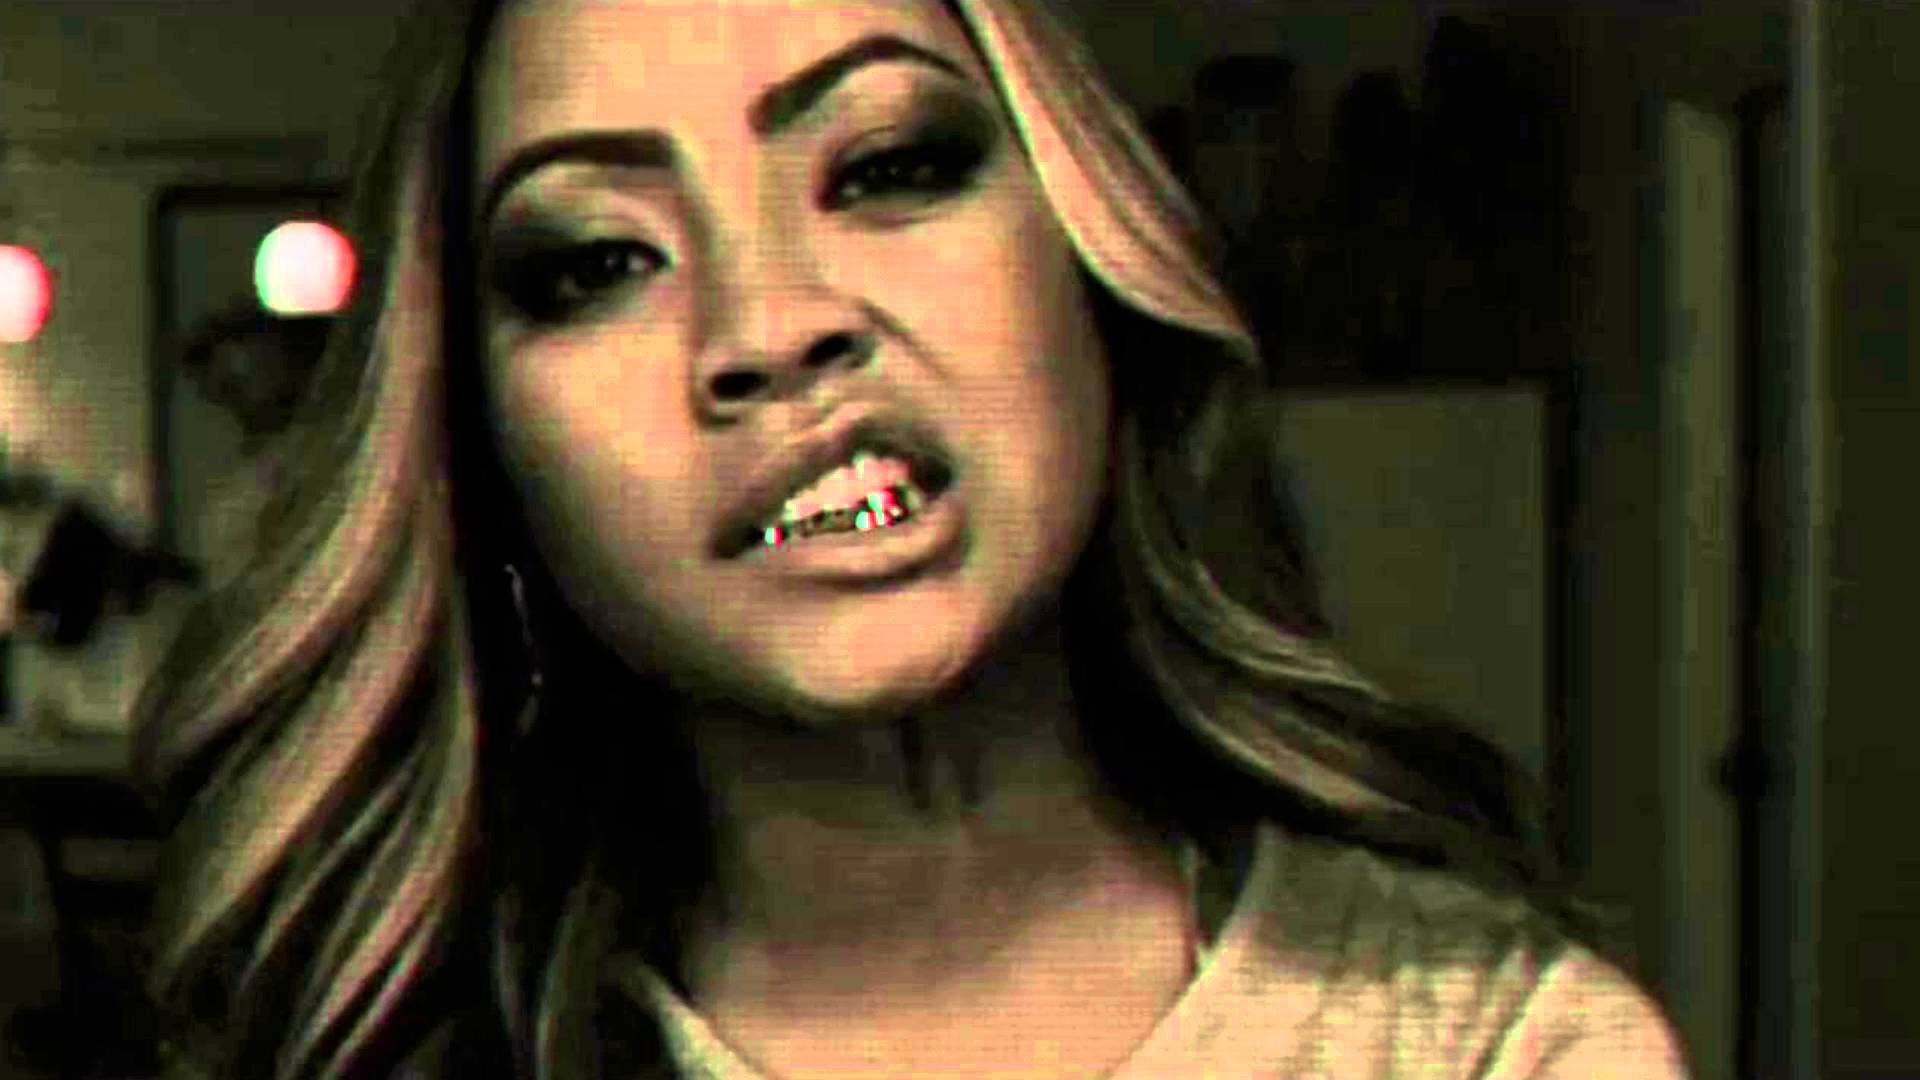 Honey Cocaine Wallpaper Images Collection of Honey 1920x1080